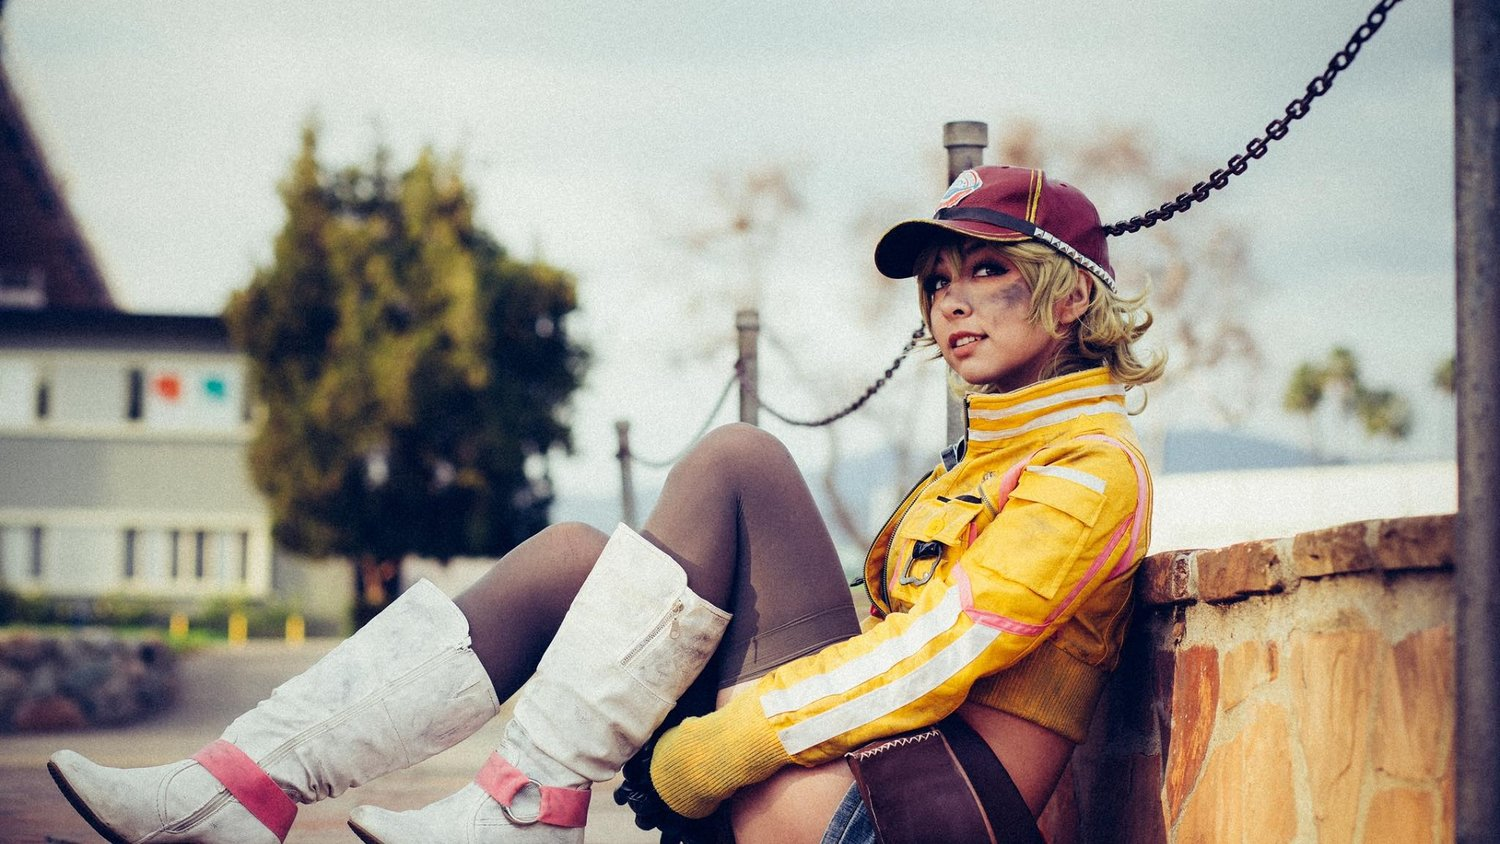 Cindy Is Taking A Break From Cars In Awesome Final Fantasy Xv